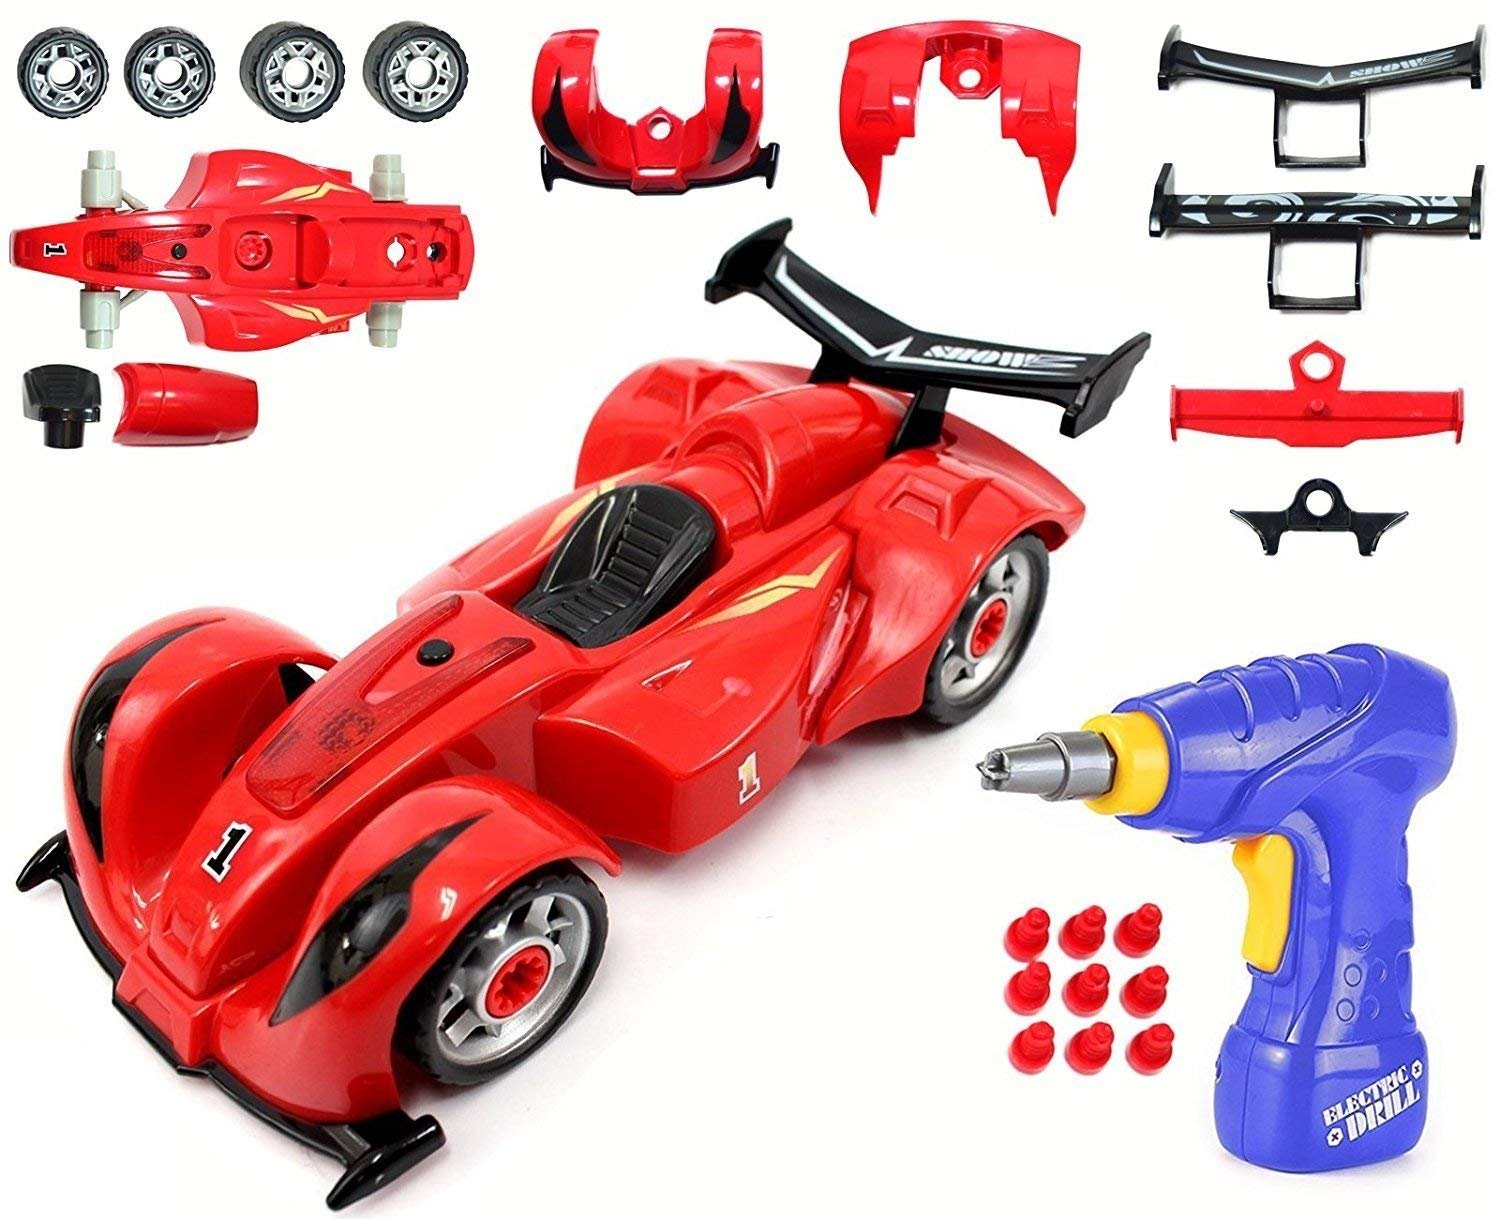 Liberty Imports Kids Take Apart Toys | Build Your Own Toy Vehicle Construction Playset | Realistic Sounds & Lights with Tools and Power Drill (Formula)